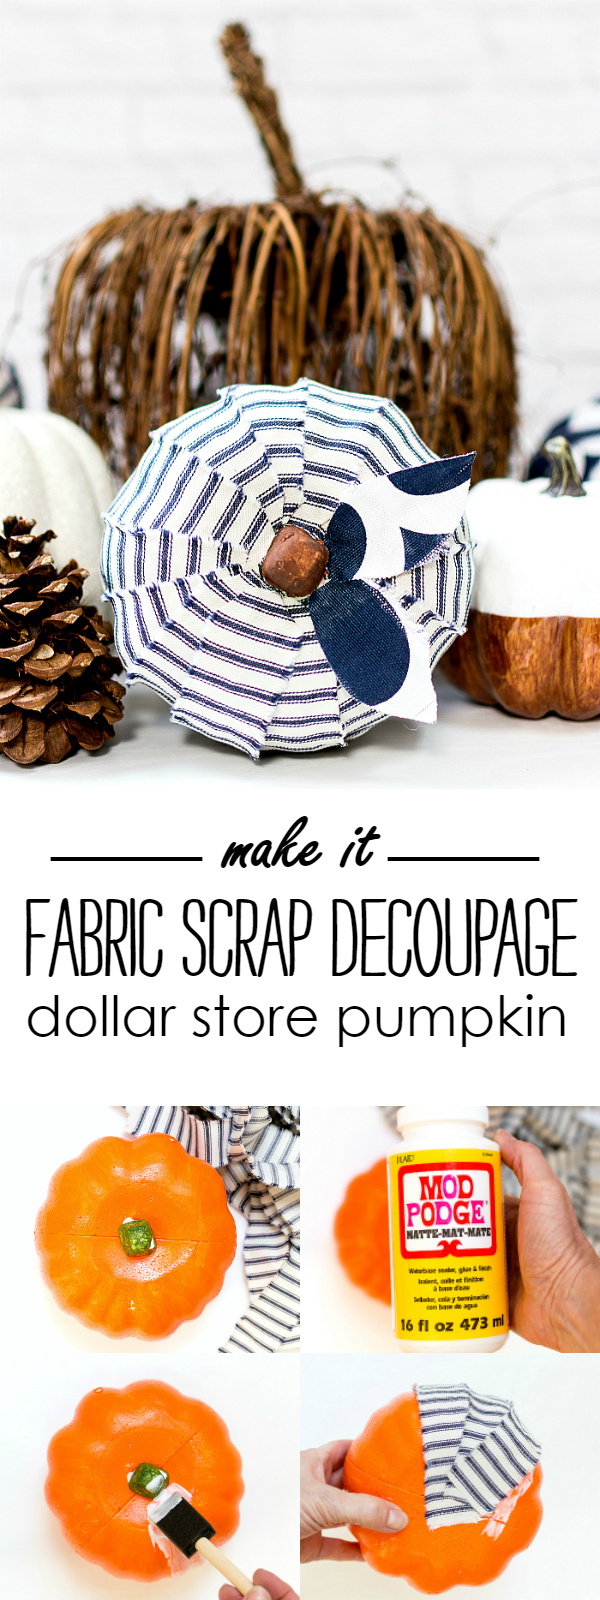 Dollar Store Pumpkin Craft Idea